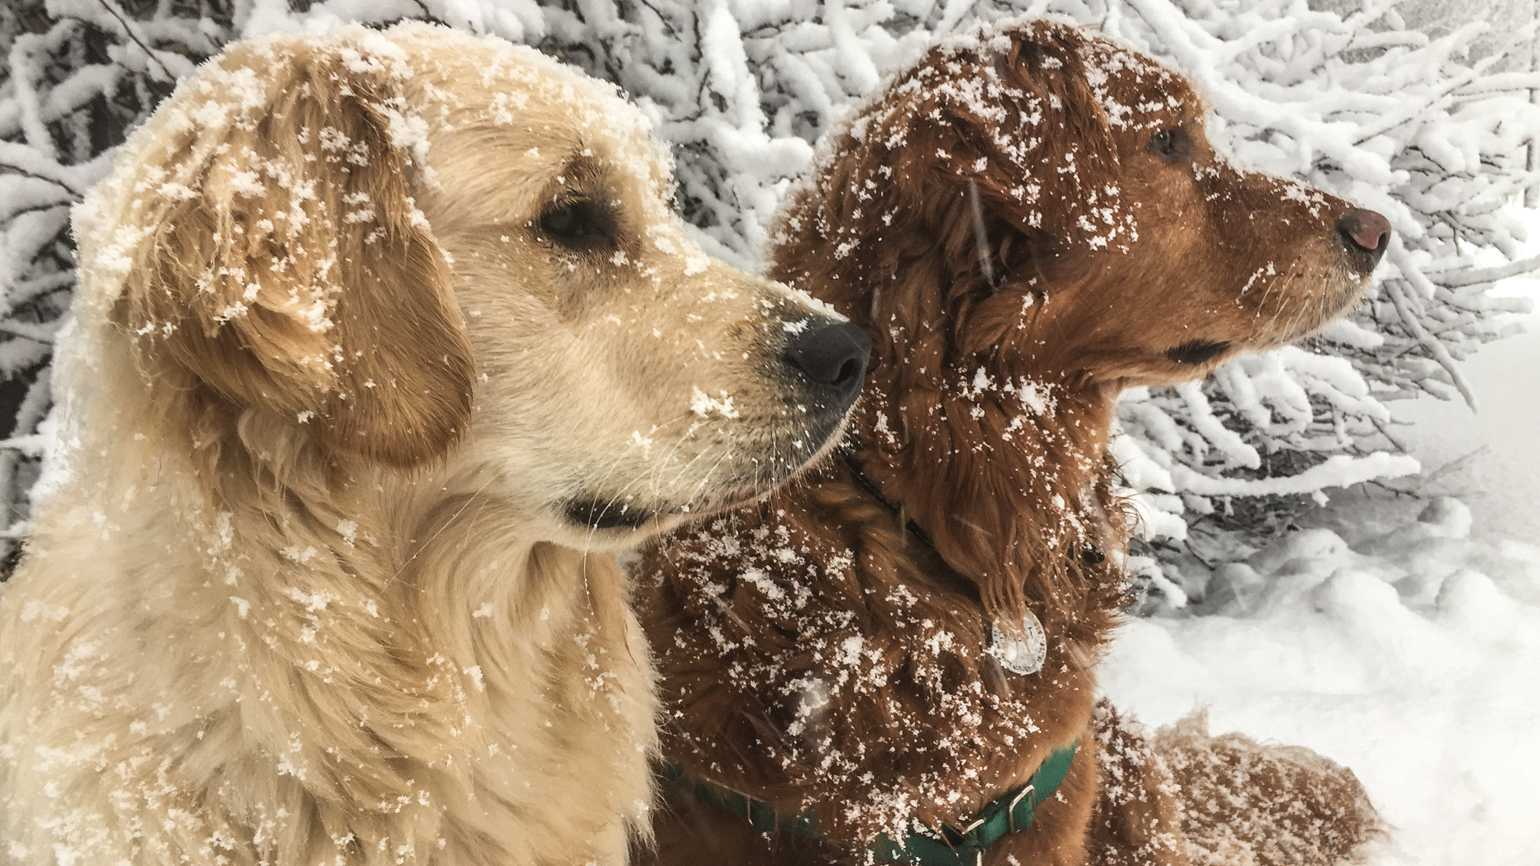 Petey (left) and Ernest enjoy a snowy outing.